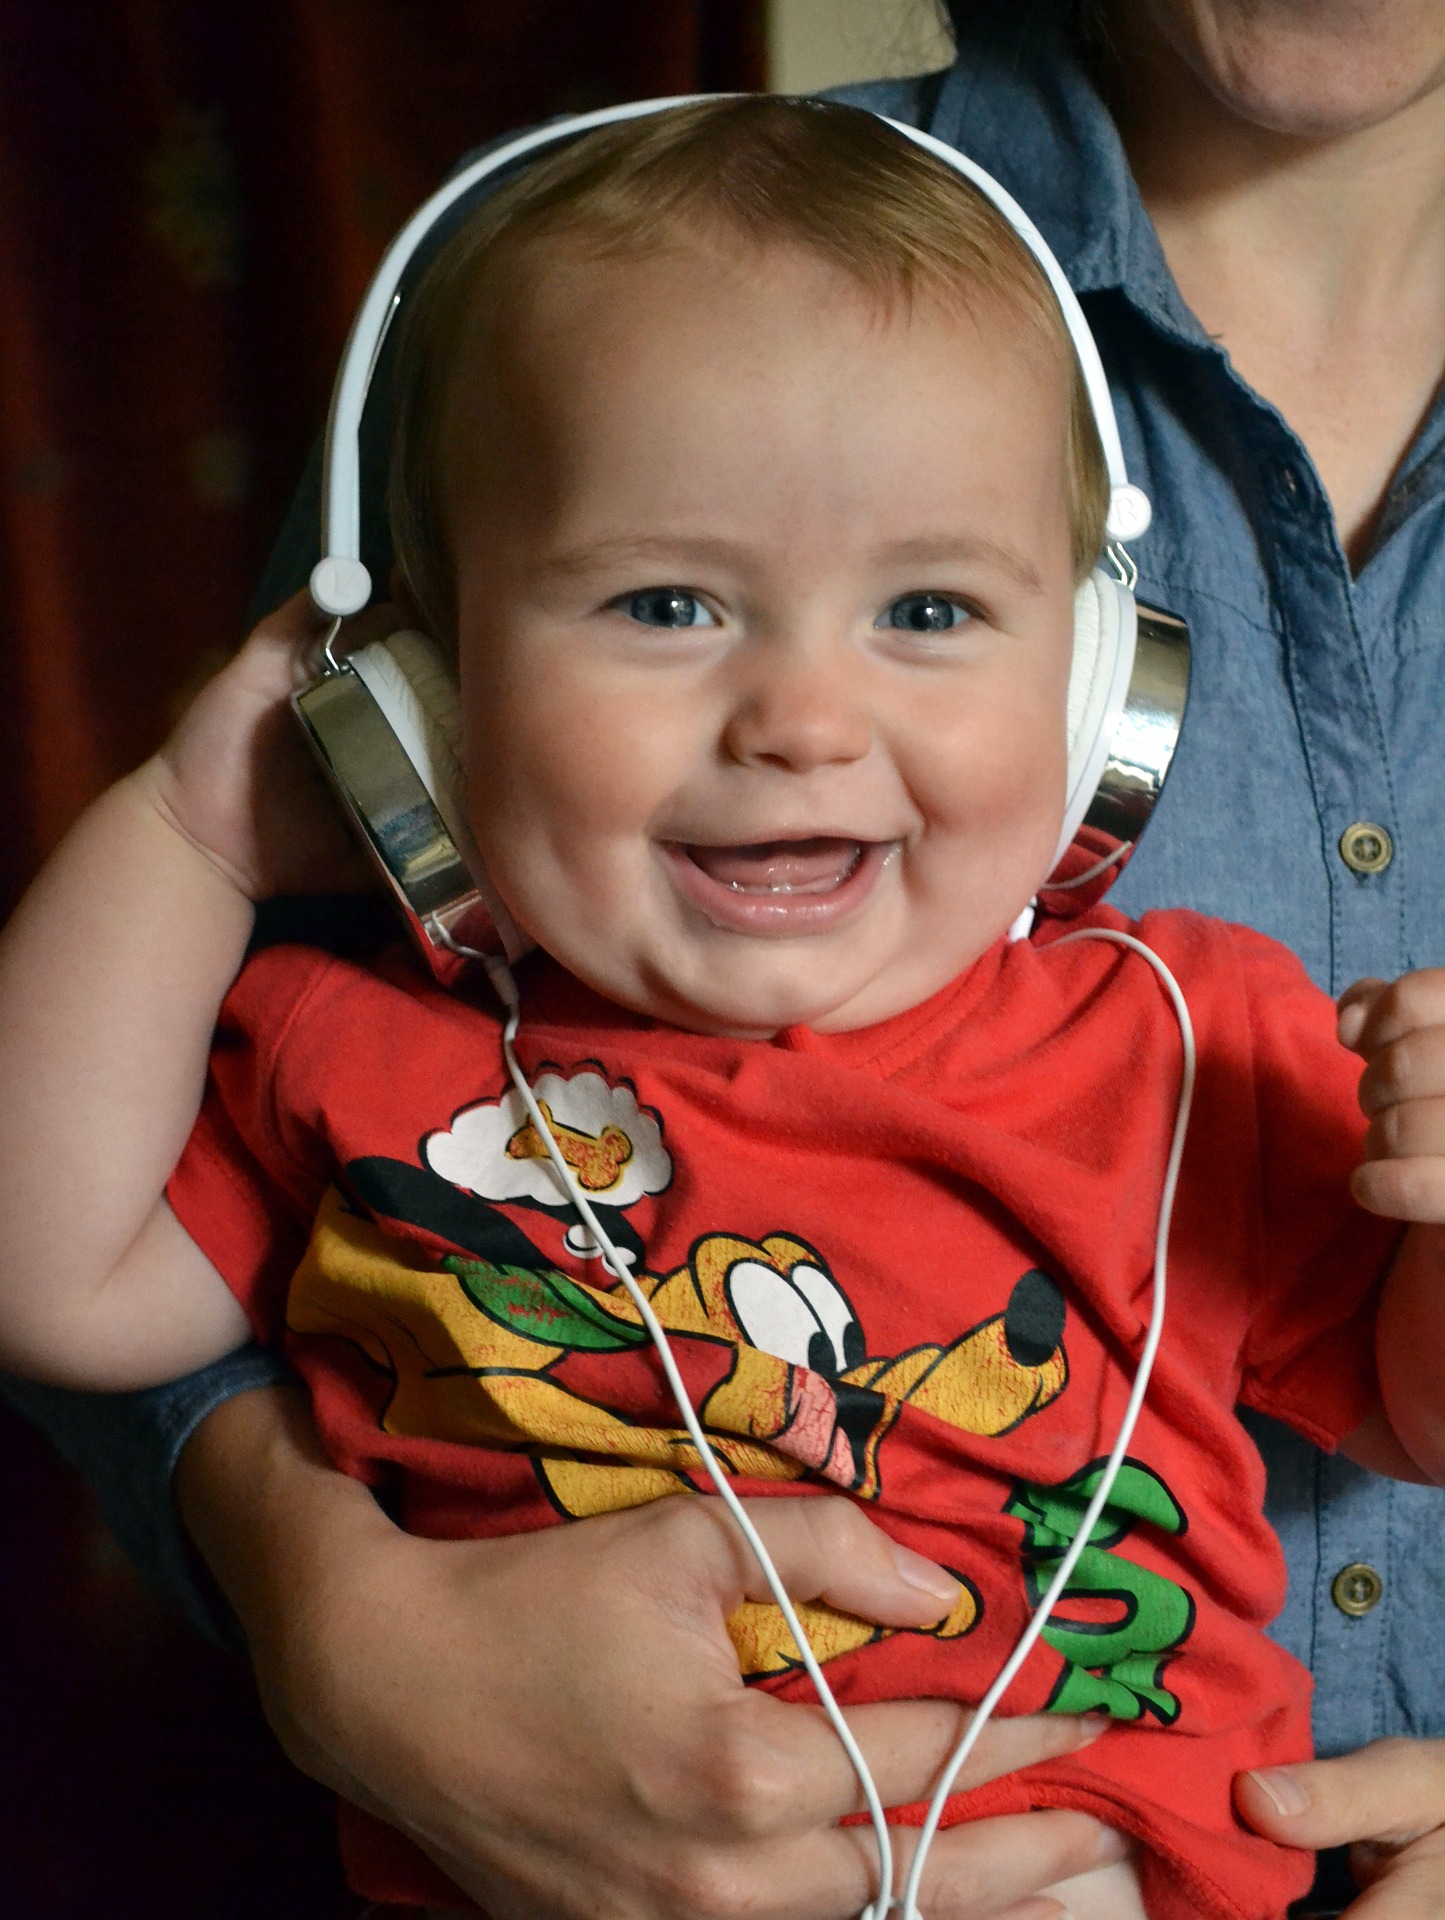 My Toddler is Addicted to Music on YouTube